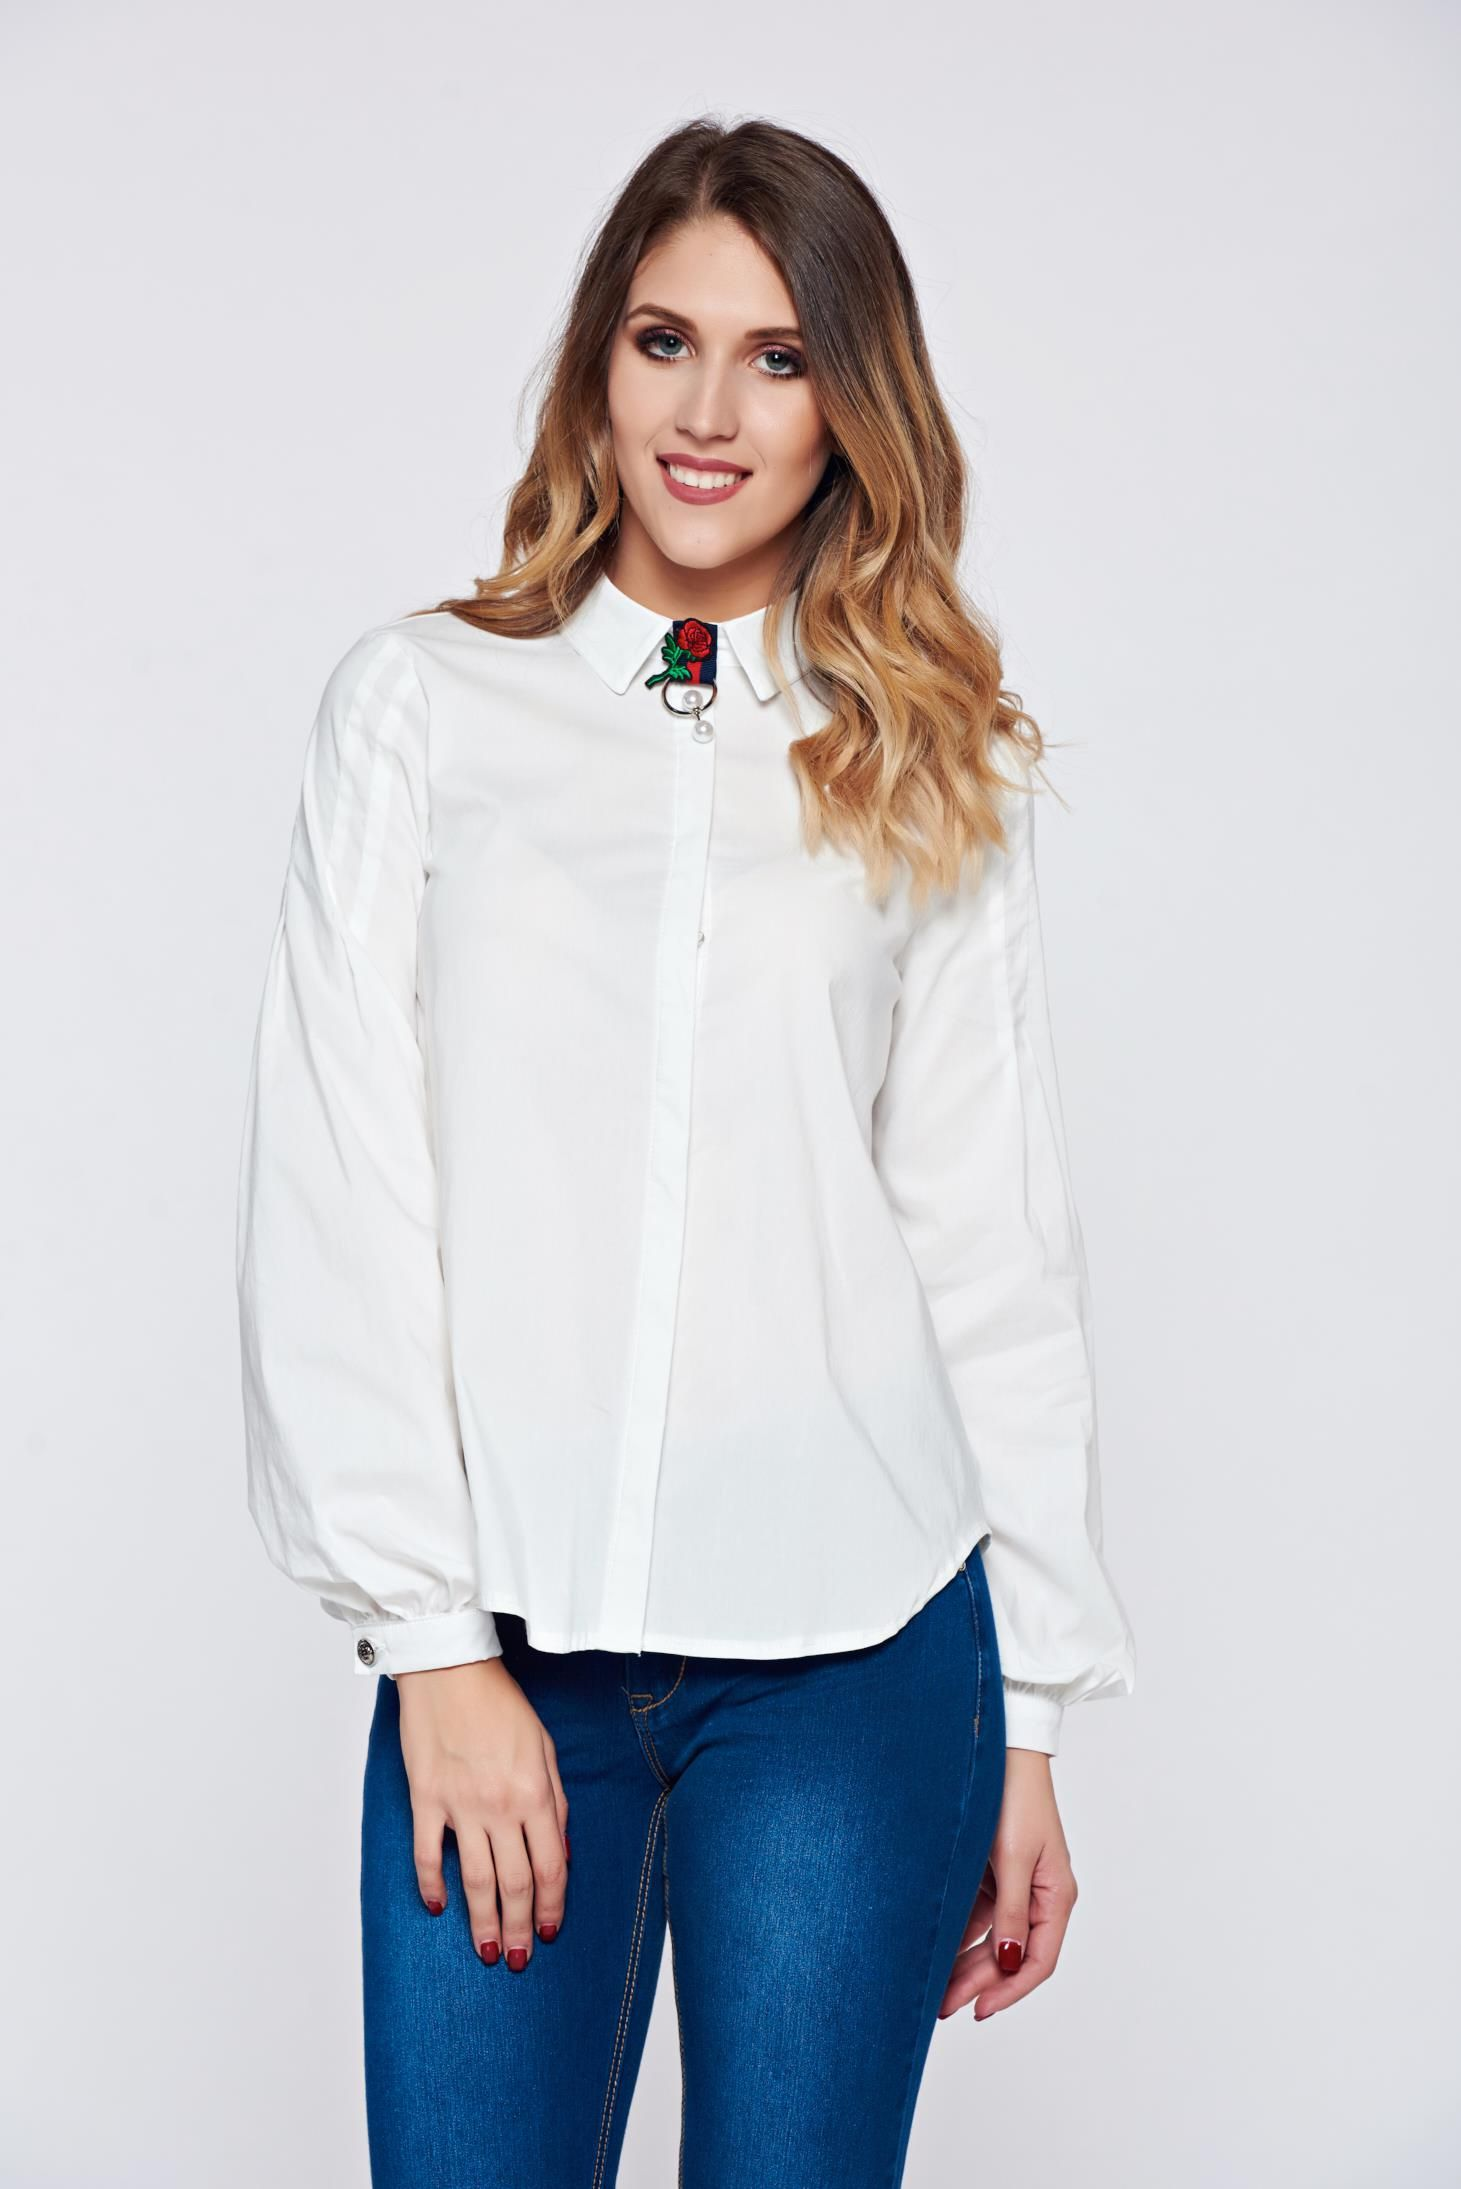 Fofy white office womens shirt with pointed collar